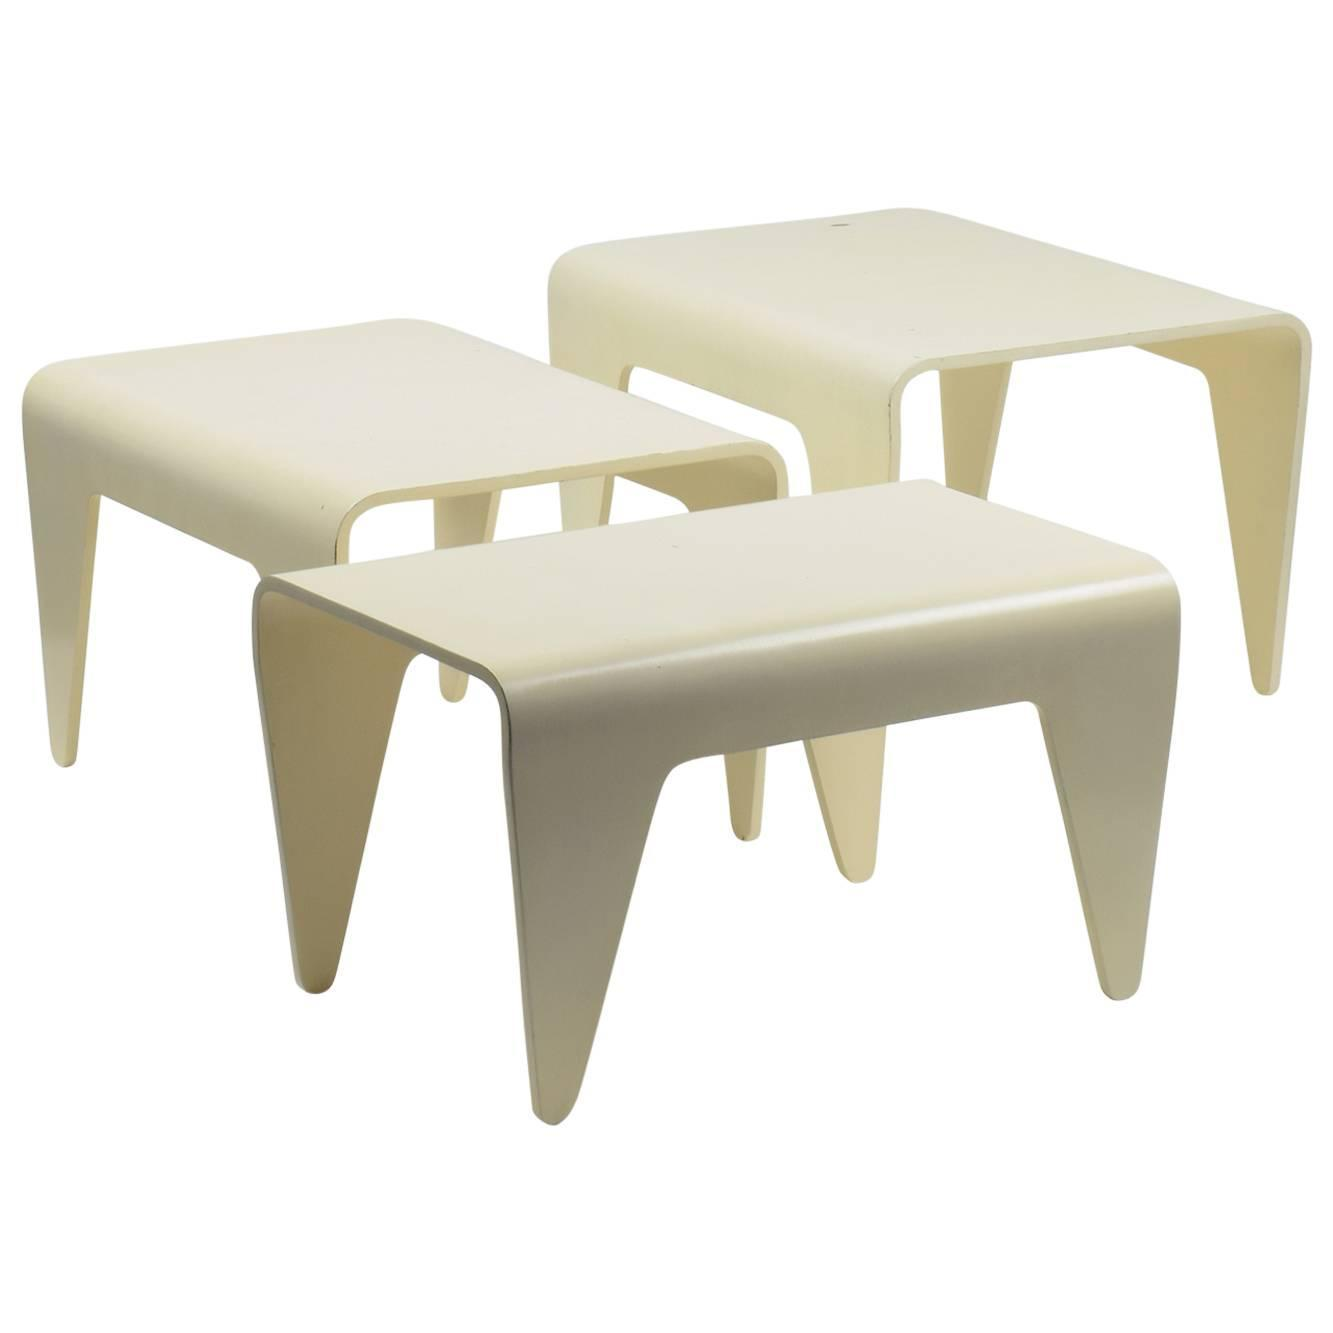 Marcel breuer isokon tables set of three nesting tables for marcel breuer isokon tables set of three nesting tables for isokon 1936 for sale at 1stdibs geotapseo Images